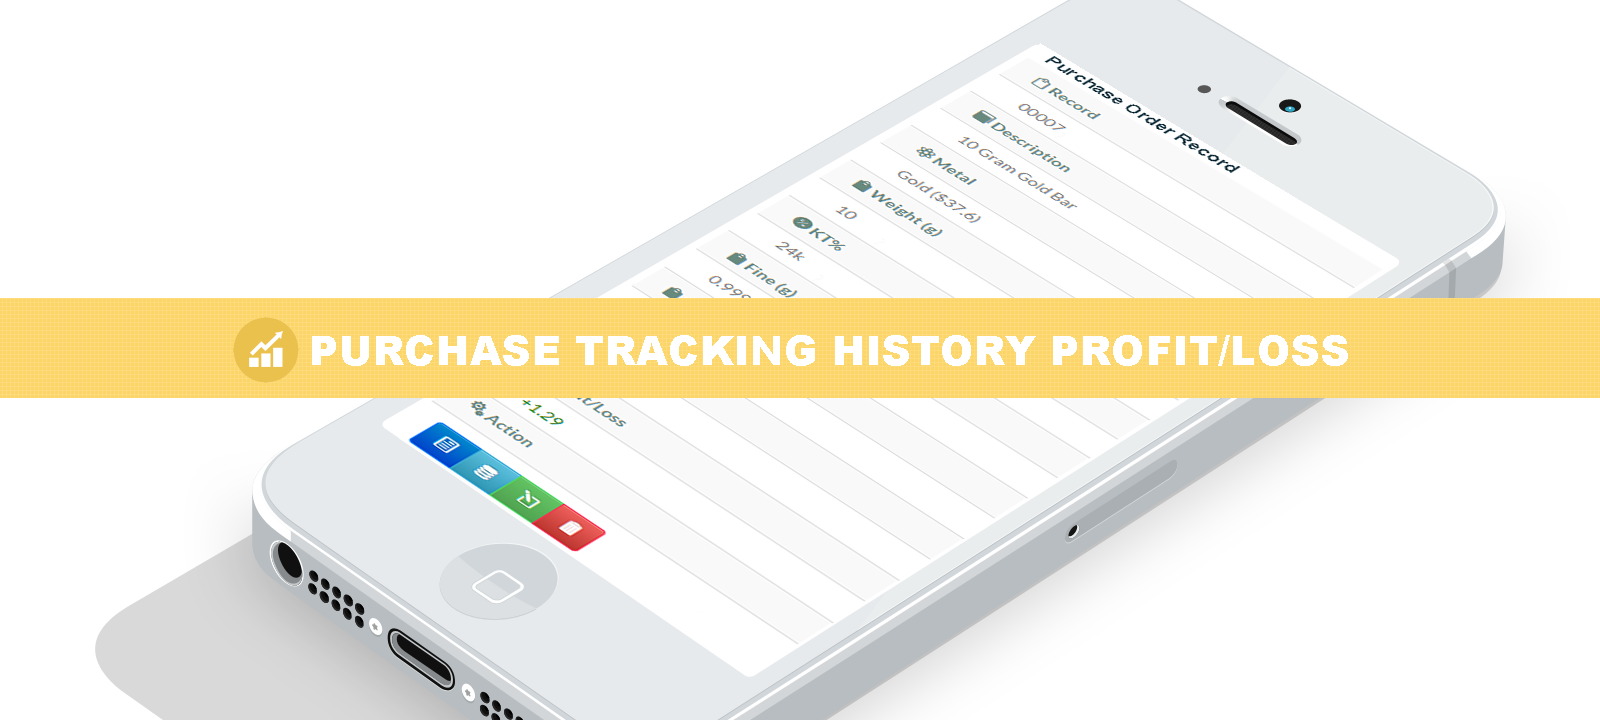 Precious metals purchase tracking history profit and loss access from anywhere application.